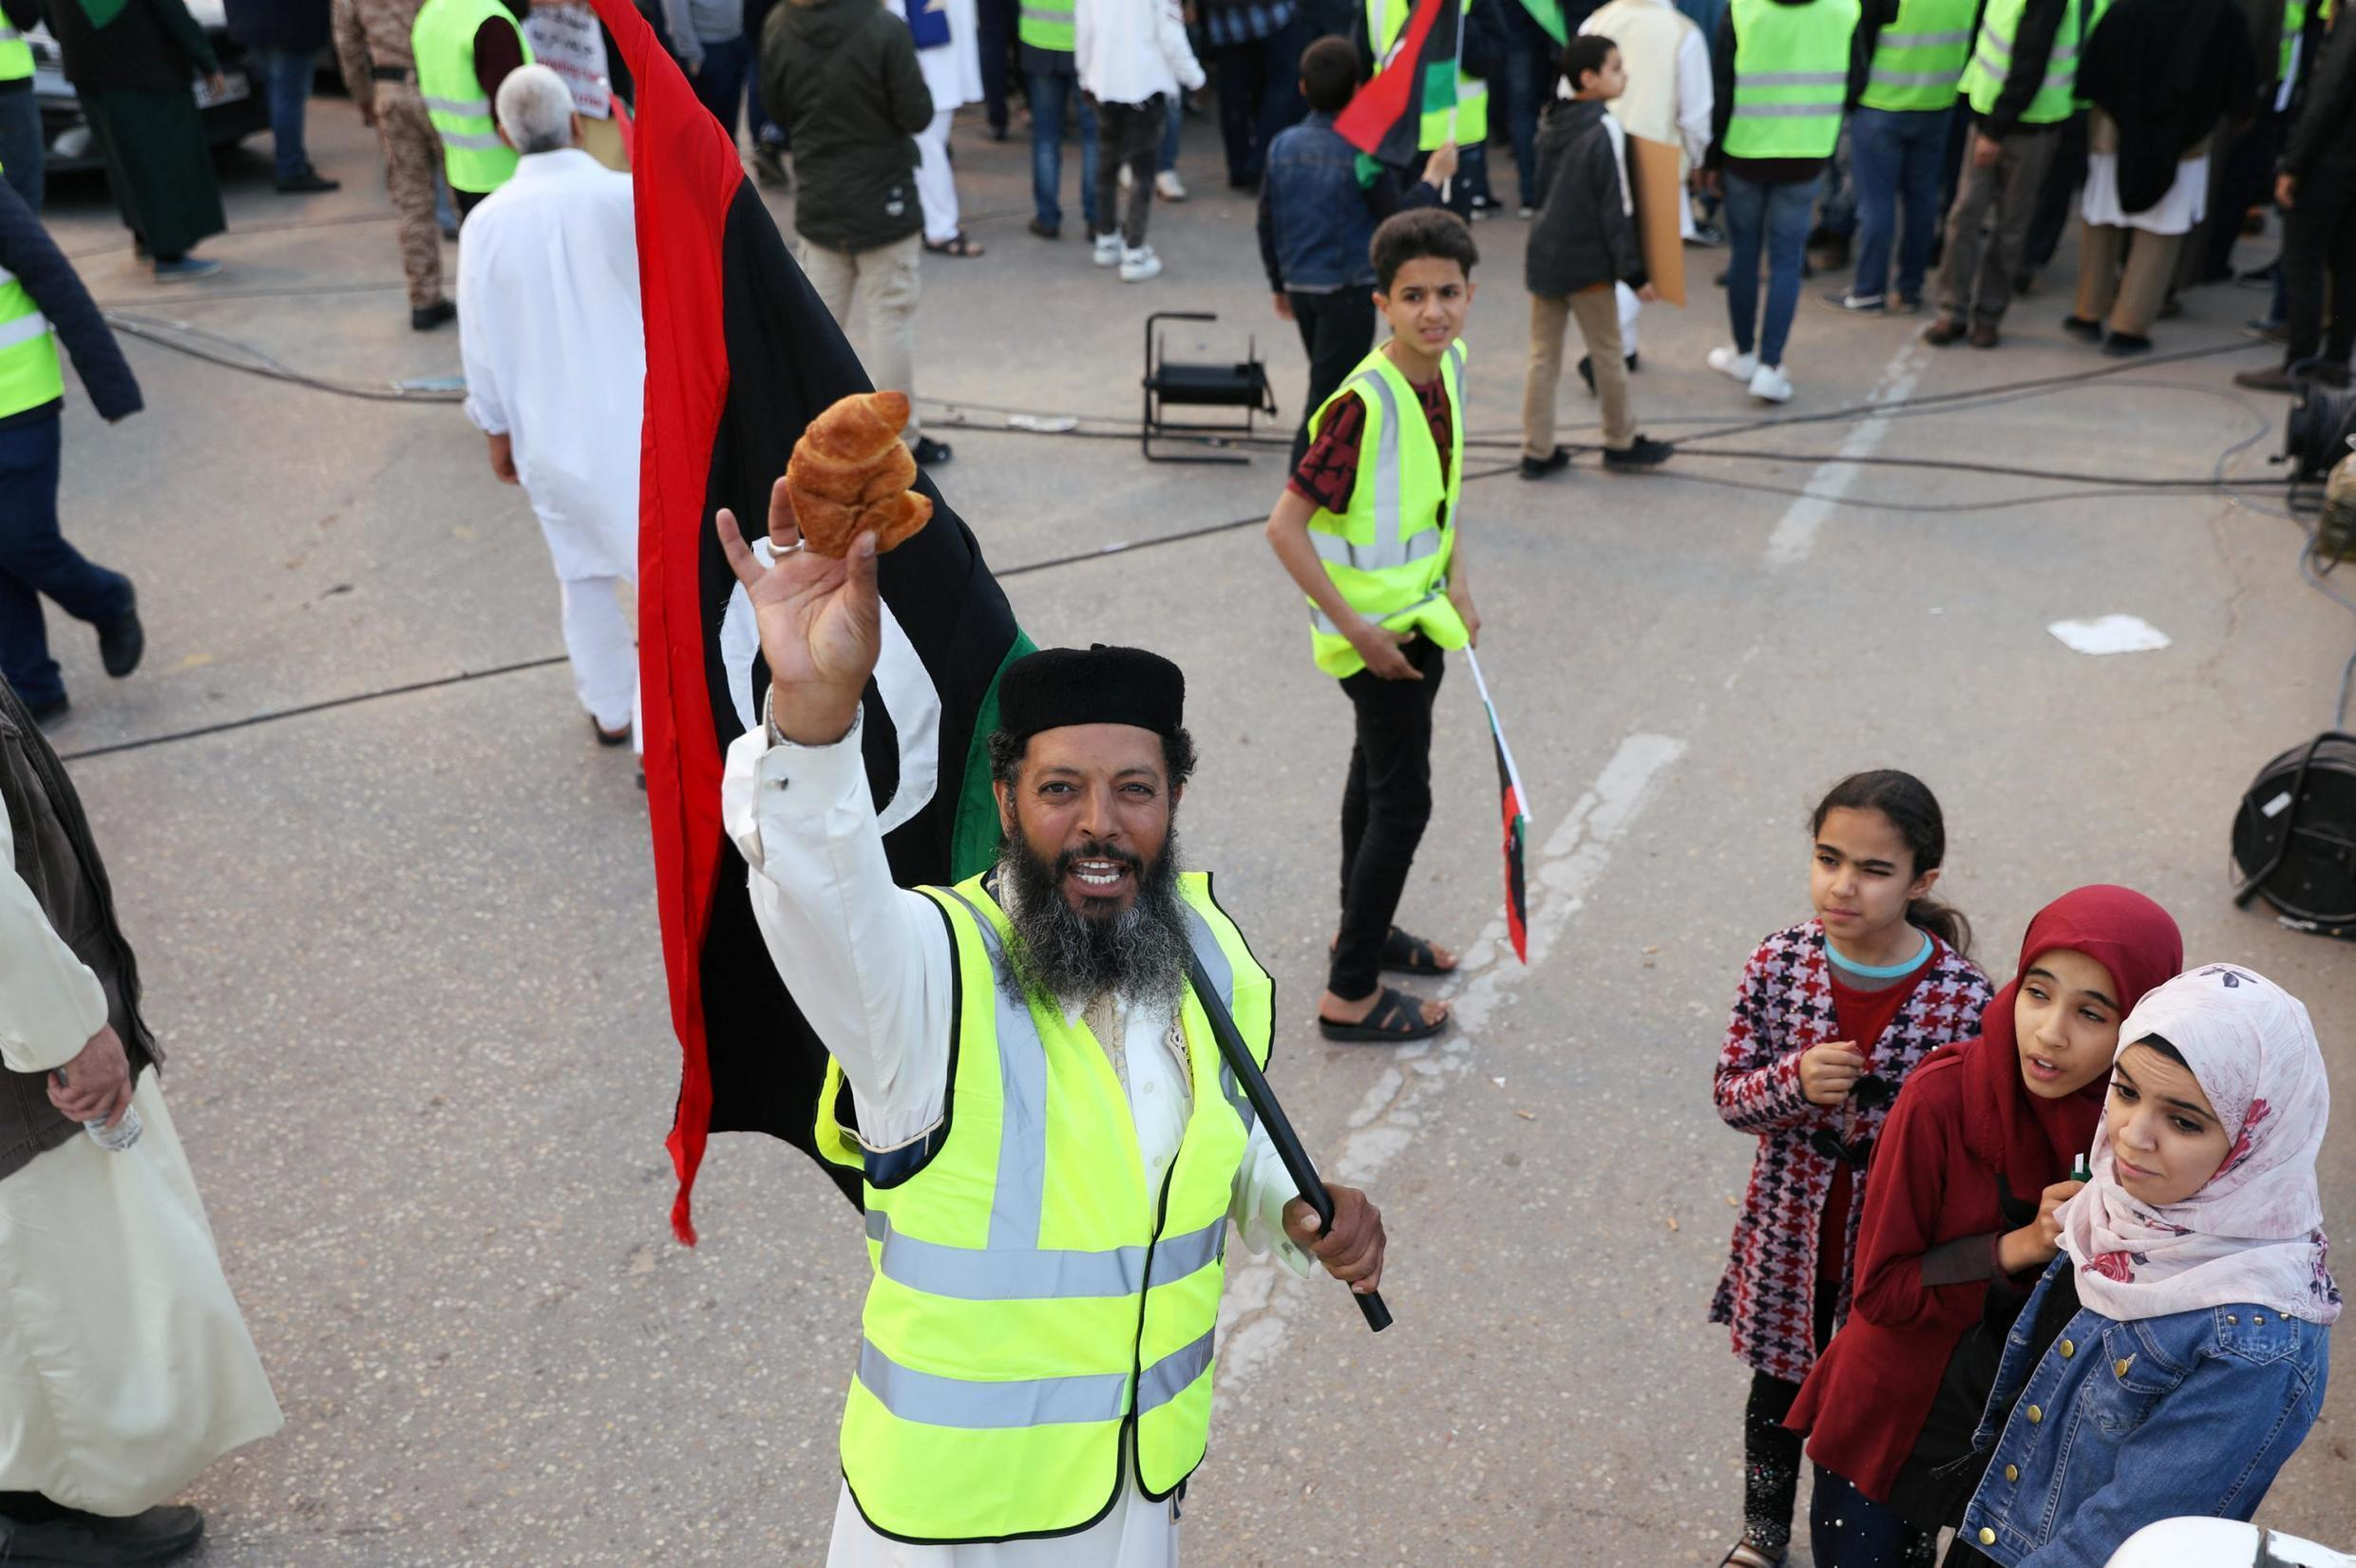 A Libyan protester holds a croissant as he attends a demonstration to demand an end to Khalifa Haftar's offensive against Tripoli in Martyrs Square in central Tripoli, April 19, 2019.